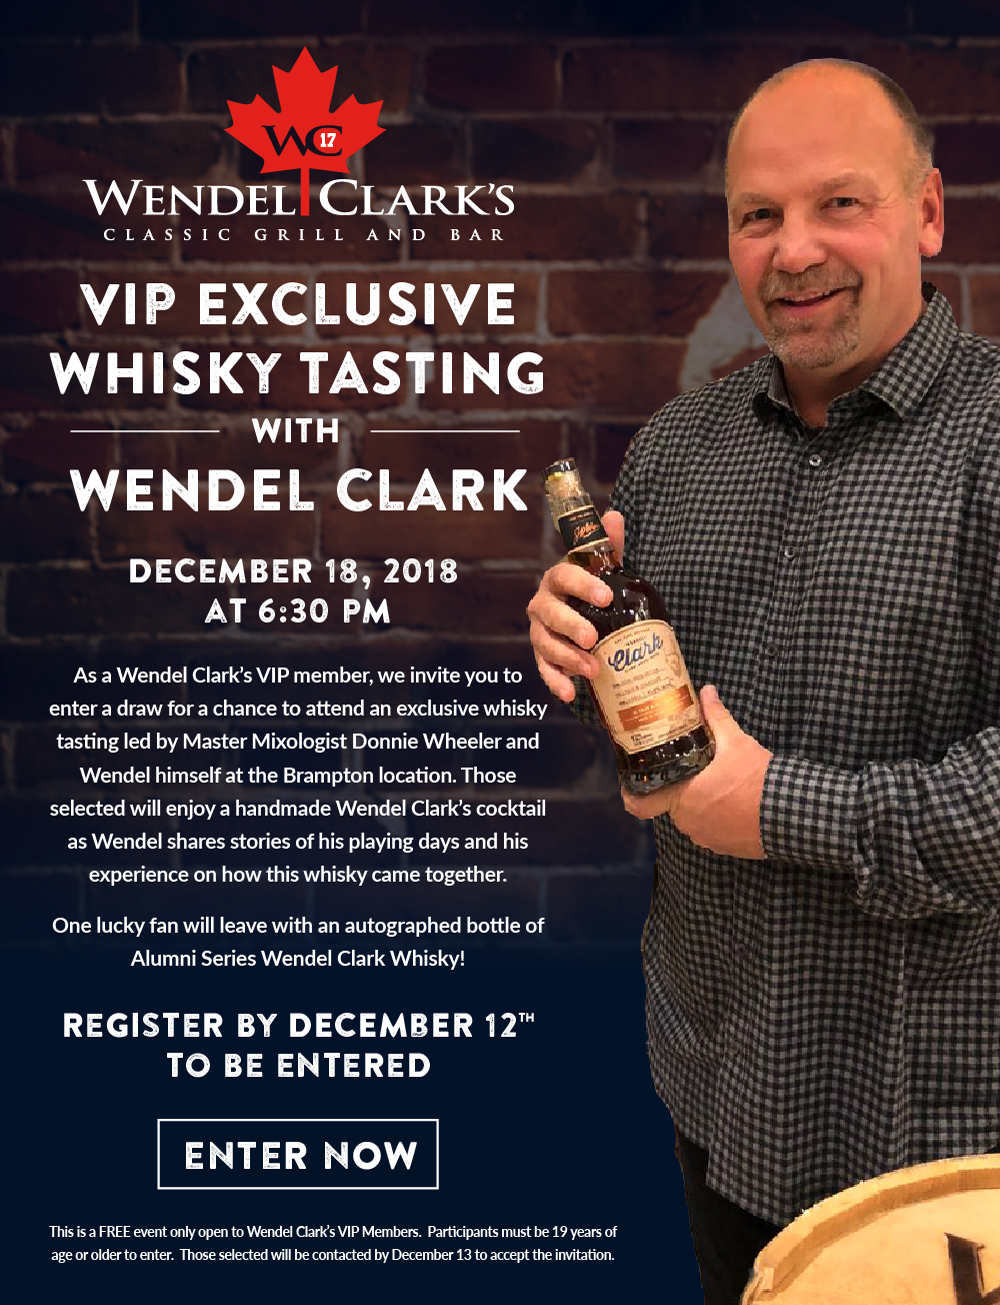 VIP Exclusive Whisky Tasting with Wendel Clark. Hurry, enter by Dec 12!